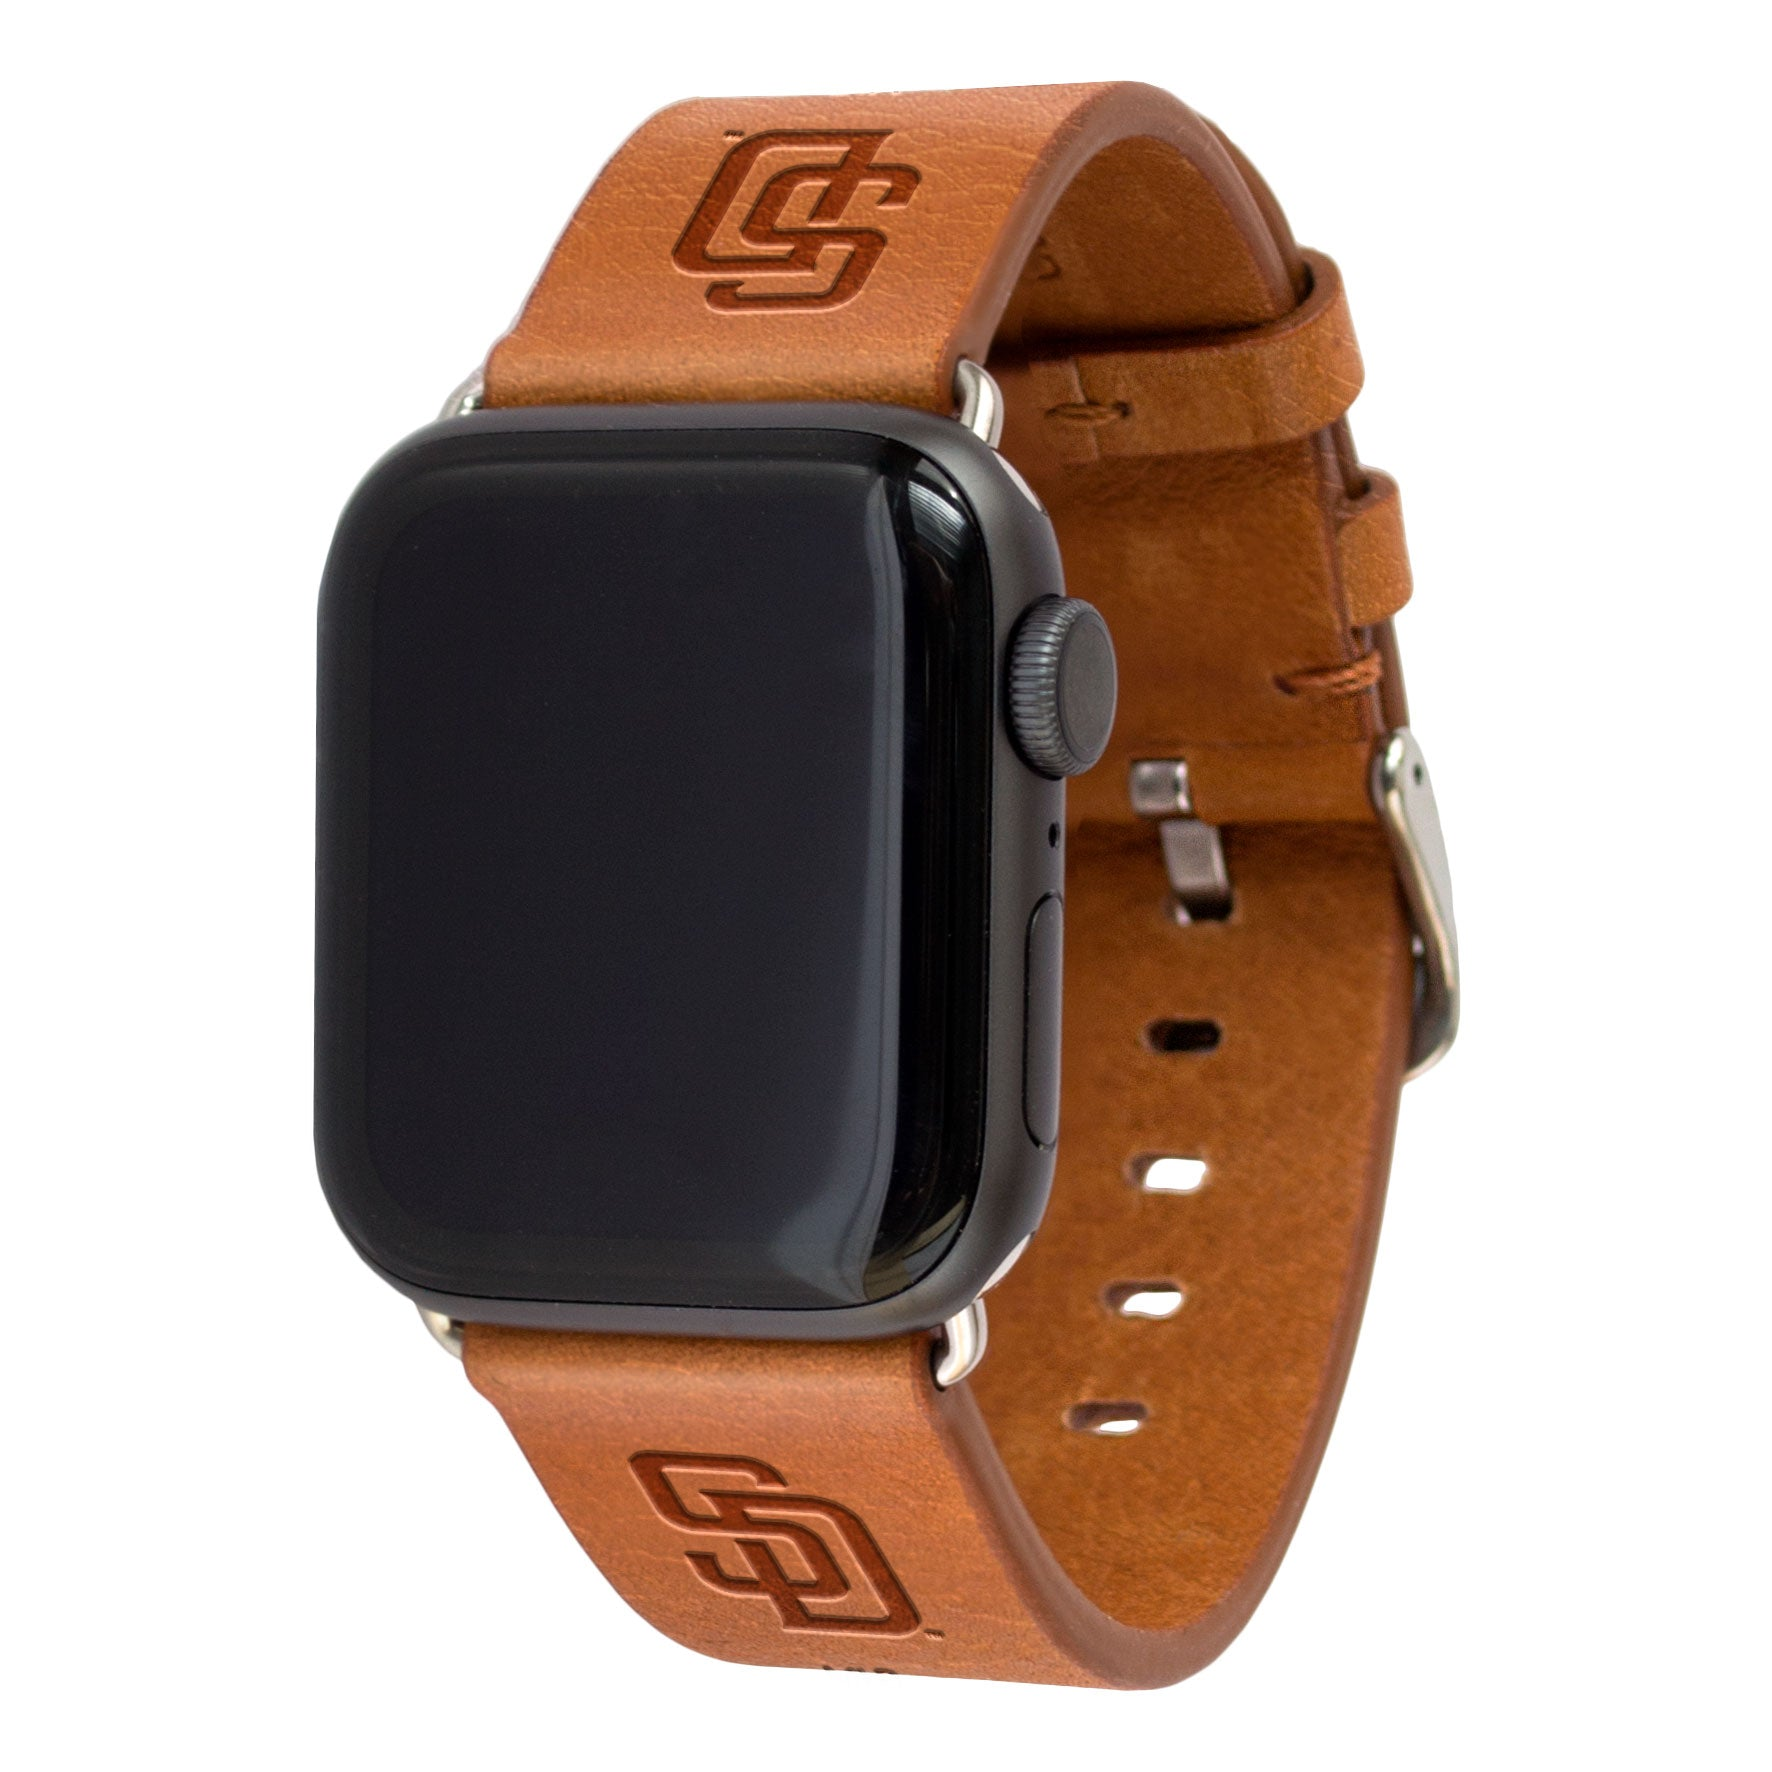 San Diego Padres Leather Band Compatible with Apple Watch - AffinityBands